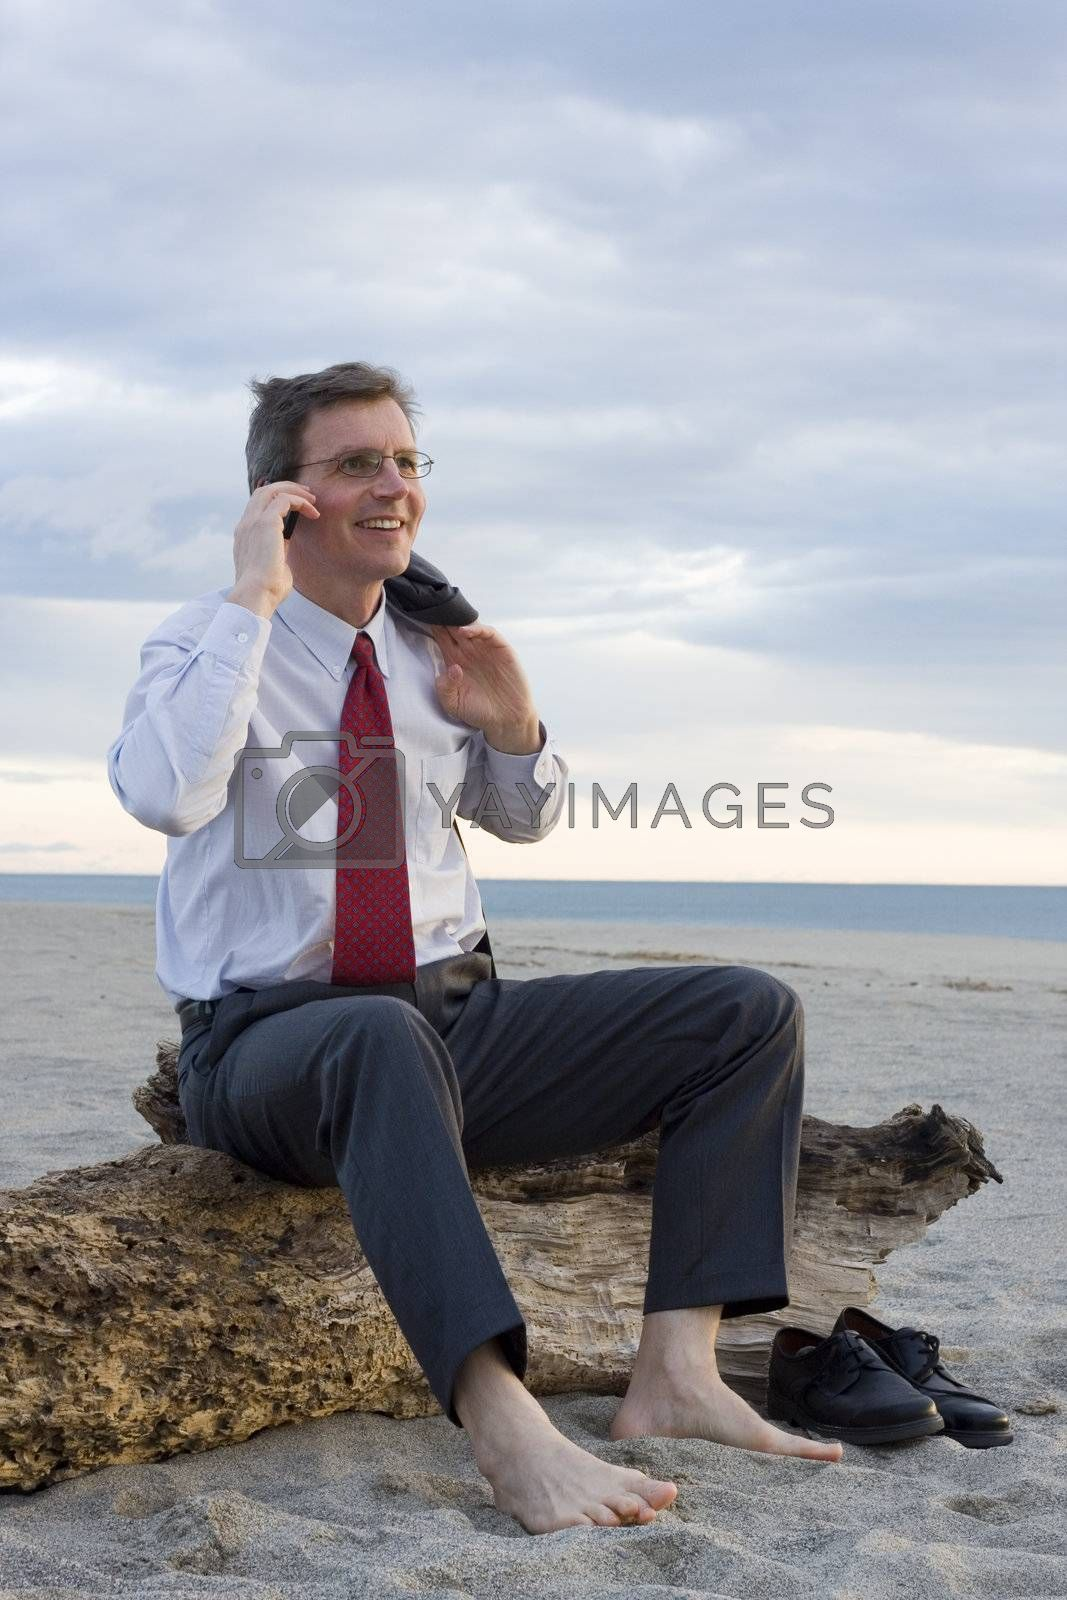 Smiling businessman making a phone call on a beach while sitting on an old tree trunk